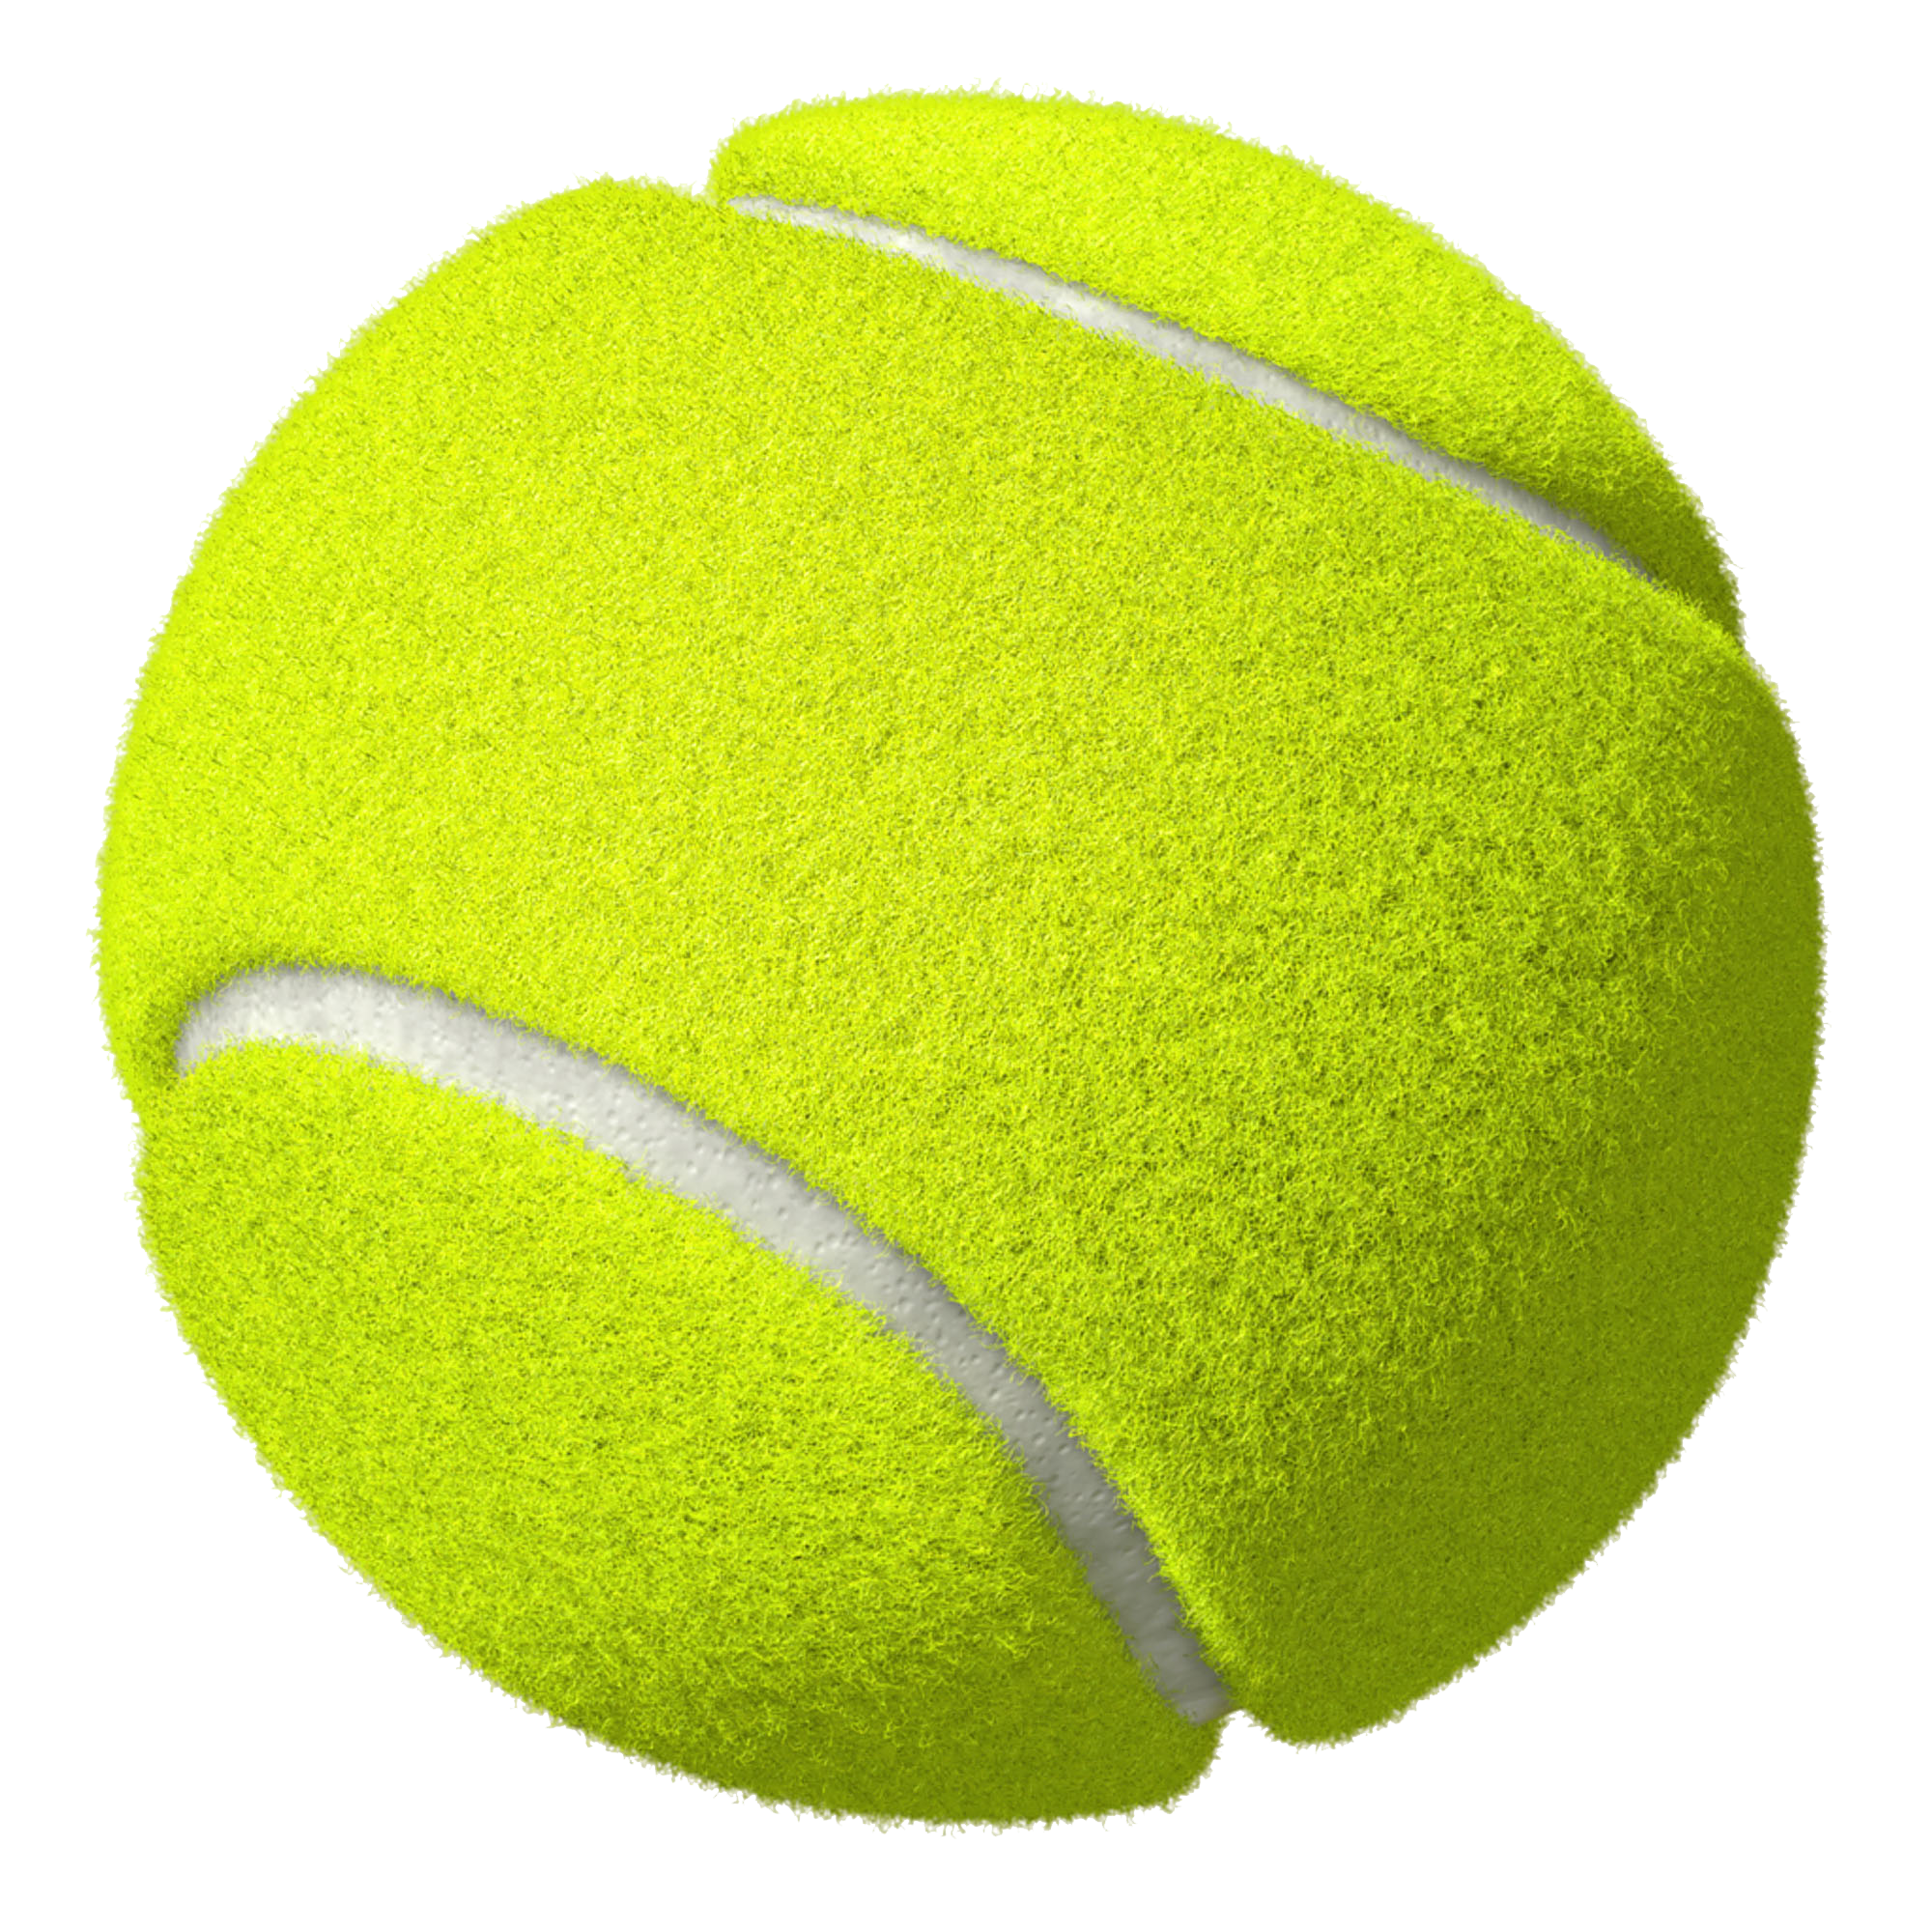 Free Tennis Ball Transparent Background, Download Free Clip.